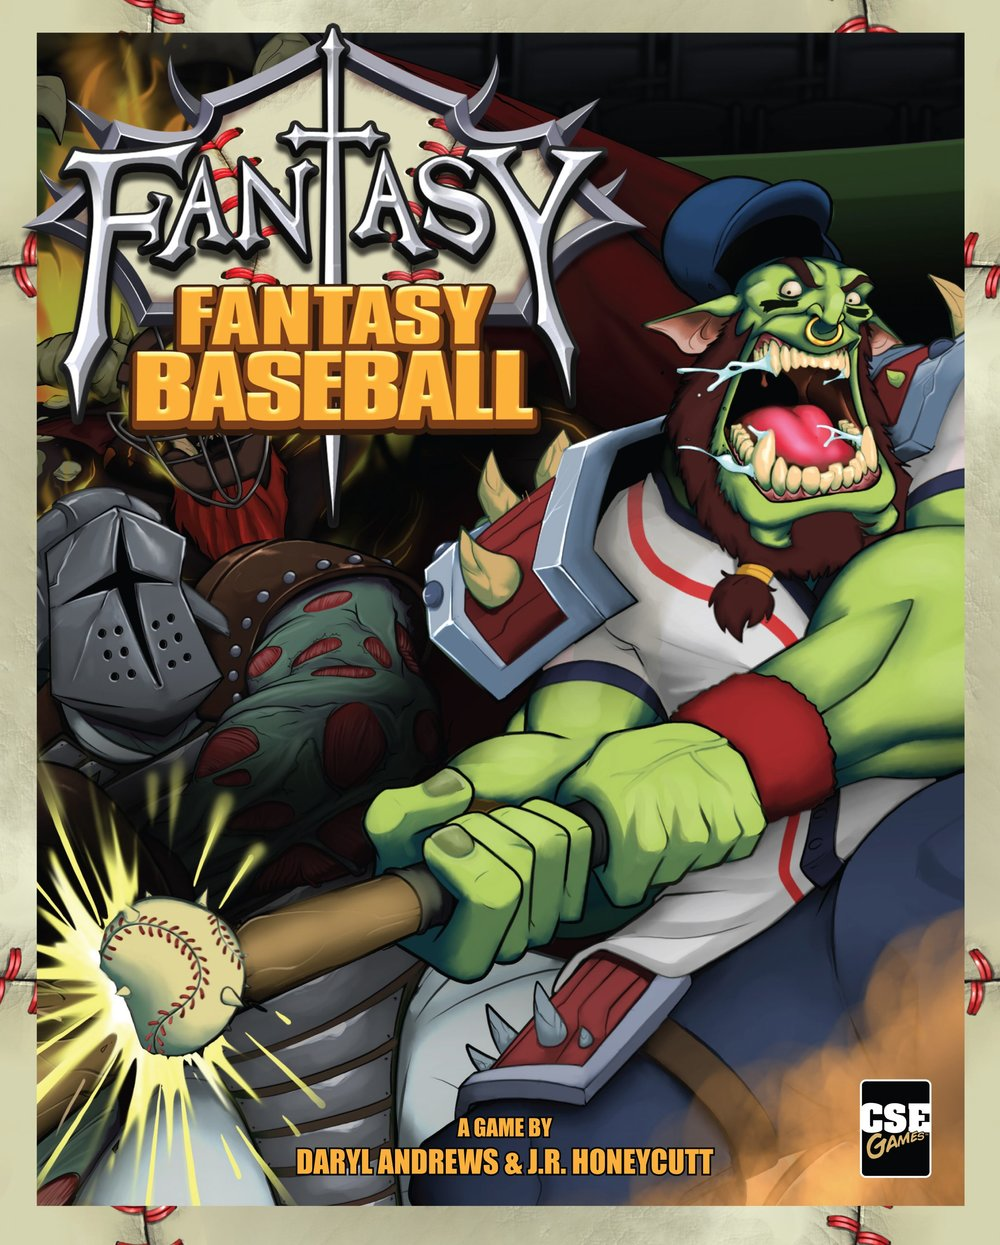 JR co-designed this game, the first in the line of Fantasy Fantasy Sports games, with acclaimed Canadian designer Daryl Andrews.